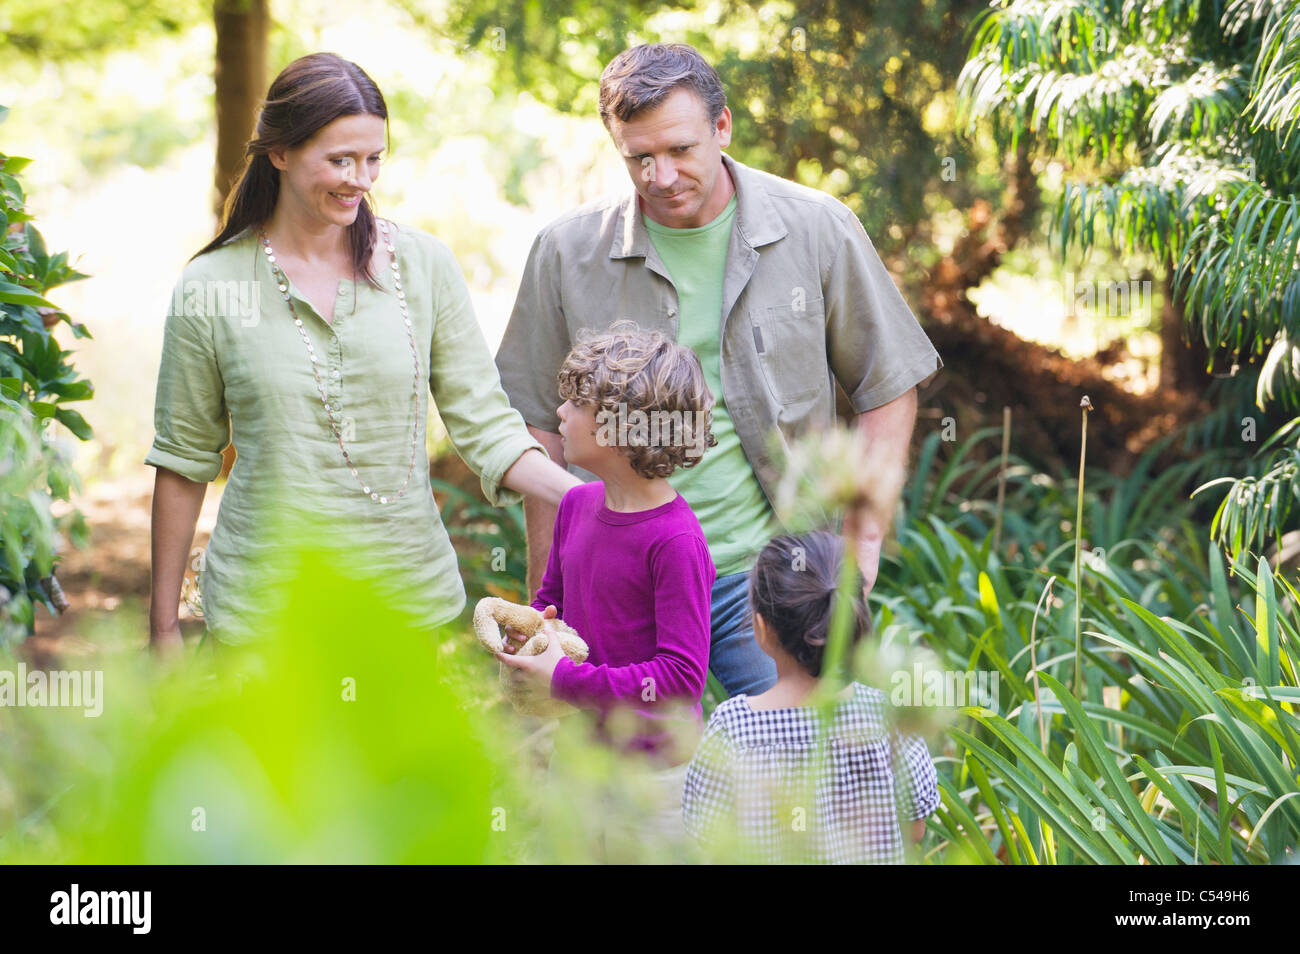 Two little children walking in a garden with their parents Stock Photo